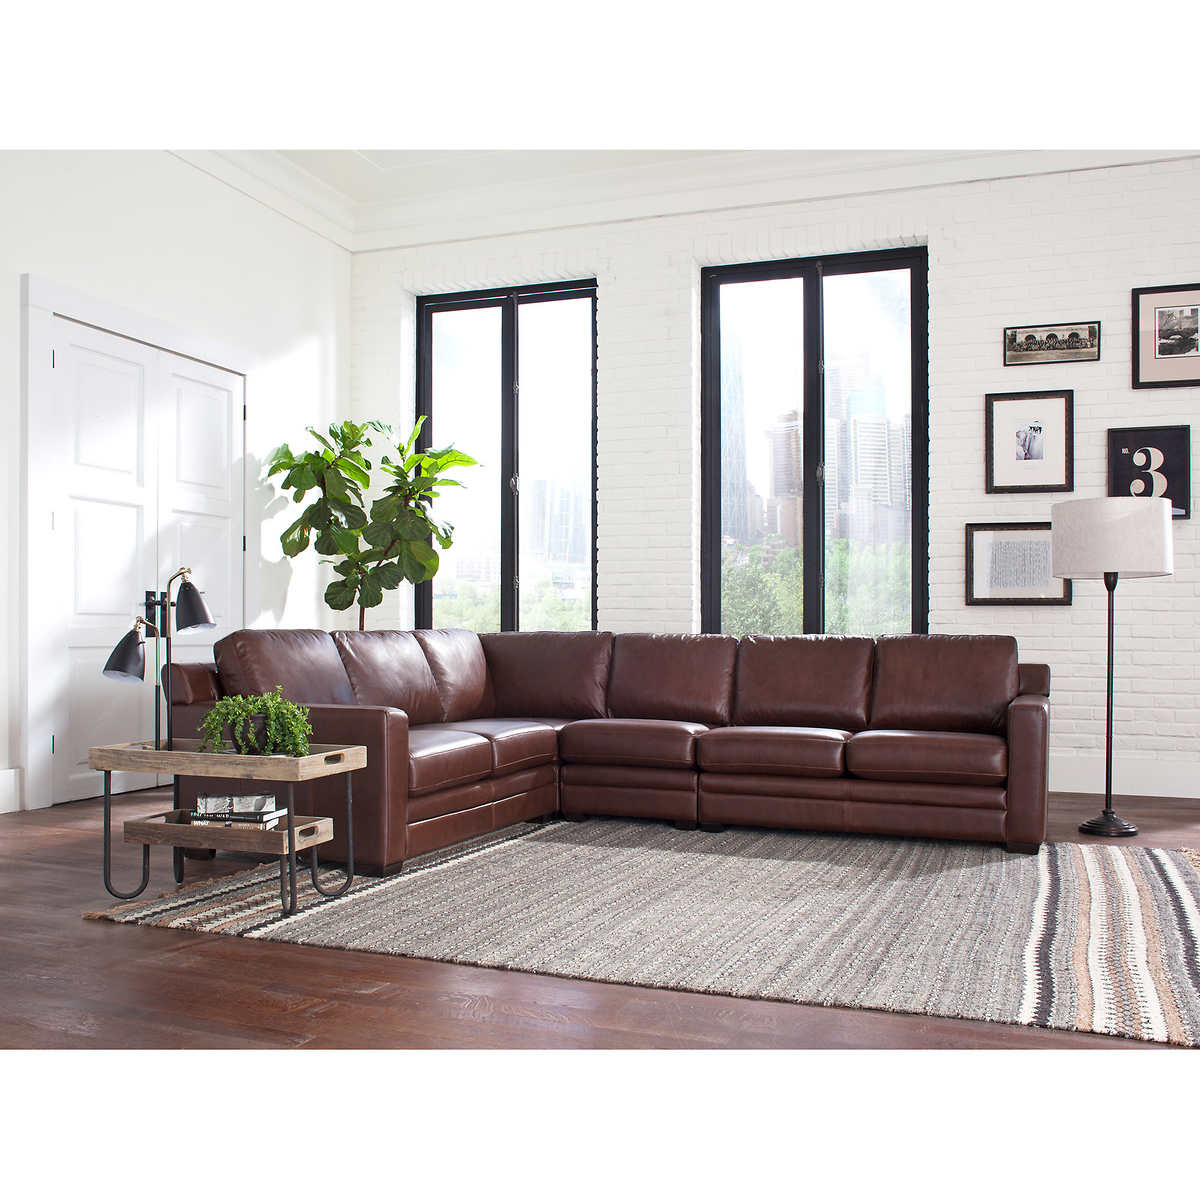 leather sofas  sectionals  costco - mateo piece leather sectional